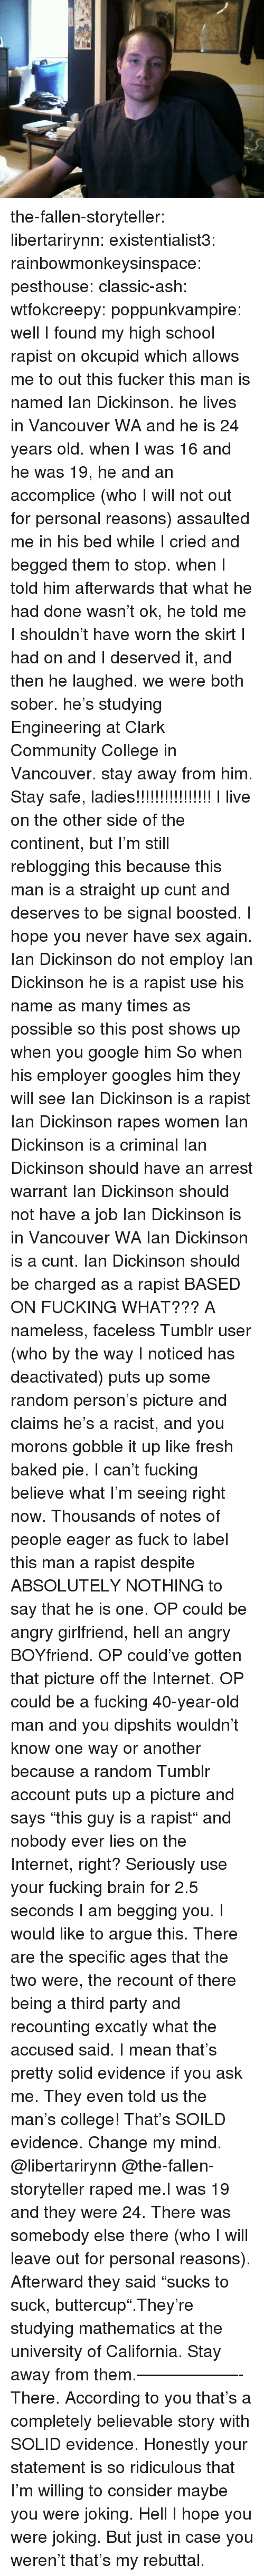 "rapes: the-fallen-storyteller: libertarirynn:  existentialist3:  rainbowmonkeysinspace:   pesthouse:  classic-ash:  wtfokcreepy:  poppunkvampire:  well I found my high school rapist on okcupid which allows me to out this fucker this man is named Ian Dickinson. he lives in Vancouver WA and he is 24 years old. when I was 16 and he was 19, he and an accomplice (who I will not out for personal reasons) assaulted me in his bed while I cried and begged them to stop. when I told him afterwards that what he had done wasn't ok, he told me I shouldn't have worn the skirt I had on and I deserved it, and then he laughed. we were both sober. he's studying Engineering at Clark Community College in Vancouver. stay away from him.  Stay safe, ladies!!!!!!!!!!!!!!!!  I live on the other side of the continent, but I'm still reblogging this because this man is a straight up cunt and deserves to be signal boosted. I hope you never have sex again.  Ian Dickinson do not employ Ian Dickinson he is a rapist use his name as many times as possible so this post shows up when you google him So when his employer googles him they will see Ian Dickinson is a rapist Ian Dickinson rapes women Ian Dickinson is a criminal Ian Dickinson should have an arrest warrant Ian Dickinson should not have a job Ian Dickinson is in Vancouver WA   Ian Dickinson is a cunt.   Ian Dickinson should be charged as a rapist  BASED ON FUCKING WHAT??? A nameless, faceless Tumblr user (who by the way I noticed has deactivated) puts up some random person's picture and claims he's a racist, and you morons gobble it up like fresh baked pie. I can't fucking believe what I'm seeing right now. Thousands of notes of people eager as fuck to label this man a rapist despite ABSOLUTELY NOTHING to say that he is one. OP could be angry girlfriend, hell an angry BOYfriend. OP could've gotten that picture off the Internet. OP could be a fucking 40-year-old man and you dipshits wouldn't know one way or another because a random Tumblr account puts up a picture and says ""this guy is a rapist"" and nobody ever lies on the Internet, right? Seriously use your fucking brain for 2.5 seconds I am begging you.  I would like to argue this. There are the specific ages that the two were, the recount of there being a third party and recounting excatly what the accused said.  I mean that's pretty solid evidence if you ask me. They even told us the man's college! That's SOILD evidence. Change my mind. @libertarirynn  @the-fallen-storyteller raped me.I was 19 and they were 24. There was somebody else there (who I will leave out for personal reasons). Afterward they said ""sucks to suck, buttercup"".They're studying mathematics at the university of California. Stay away from them.——————-There. According to you that's a completely believable story with SOLID evidence. Honestly your statement is so ridiculous that I'm willing to consider maybe you were joking. Hell I hope you were joking. But just in case you weren't that's my rebuttal."